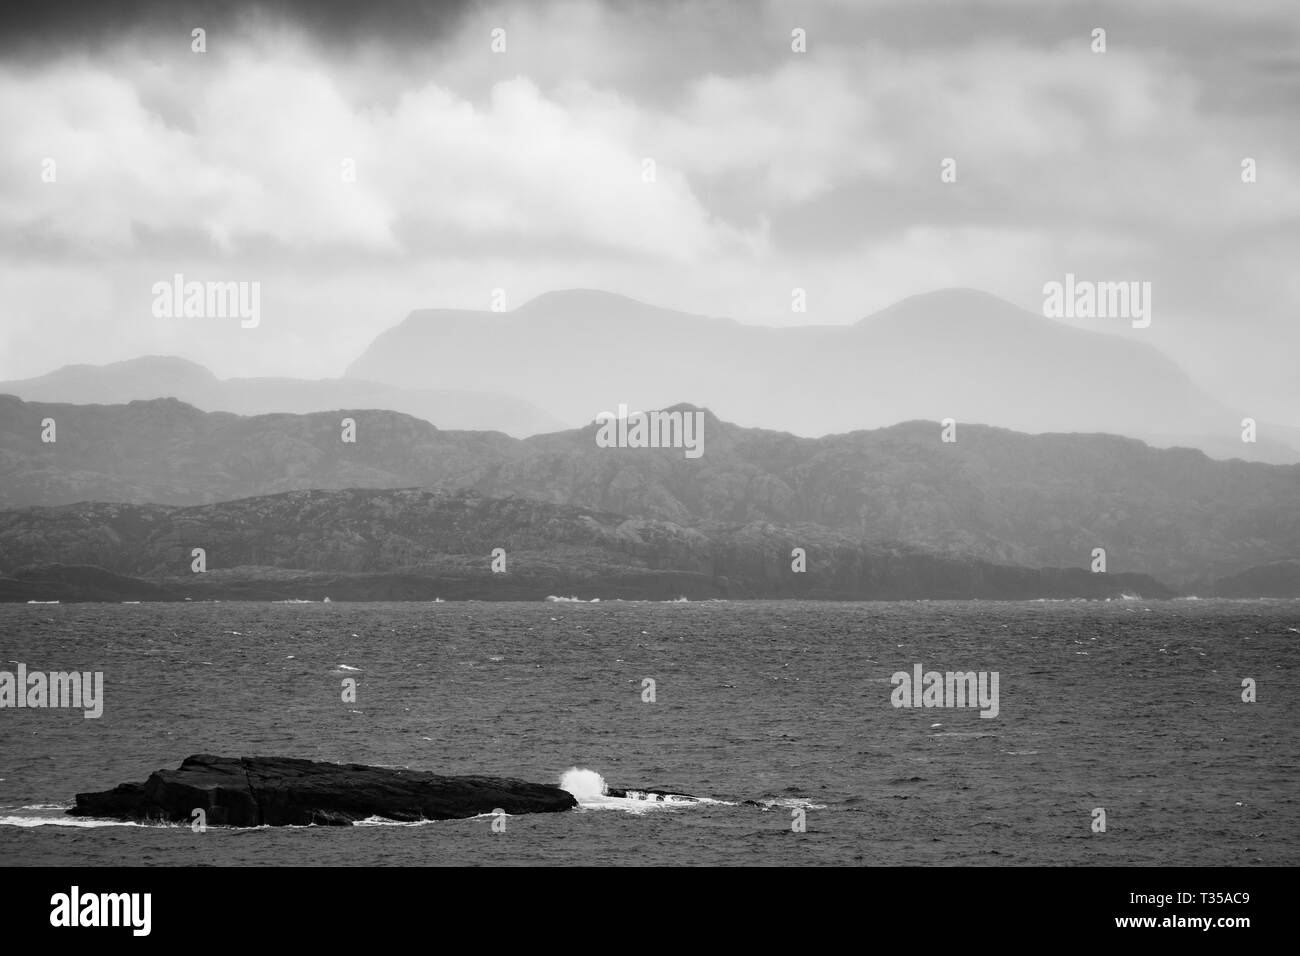 Sheathed in mist and fog, the mountain Foinaven is seen here as viewed from Blairmore, Sutherland, northern Scotland. - Stock Image